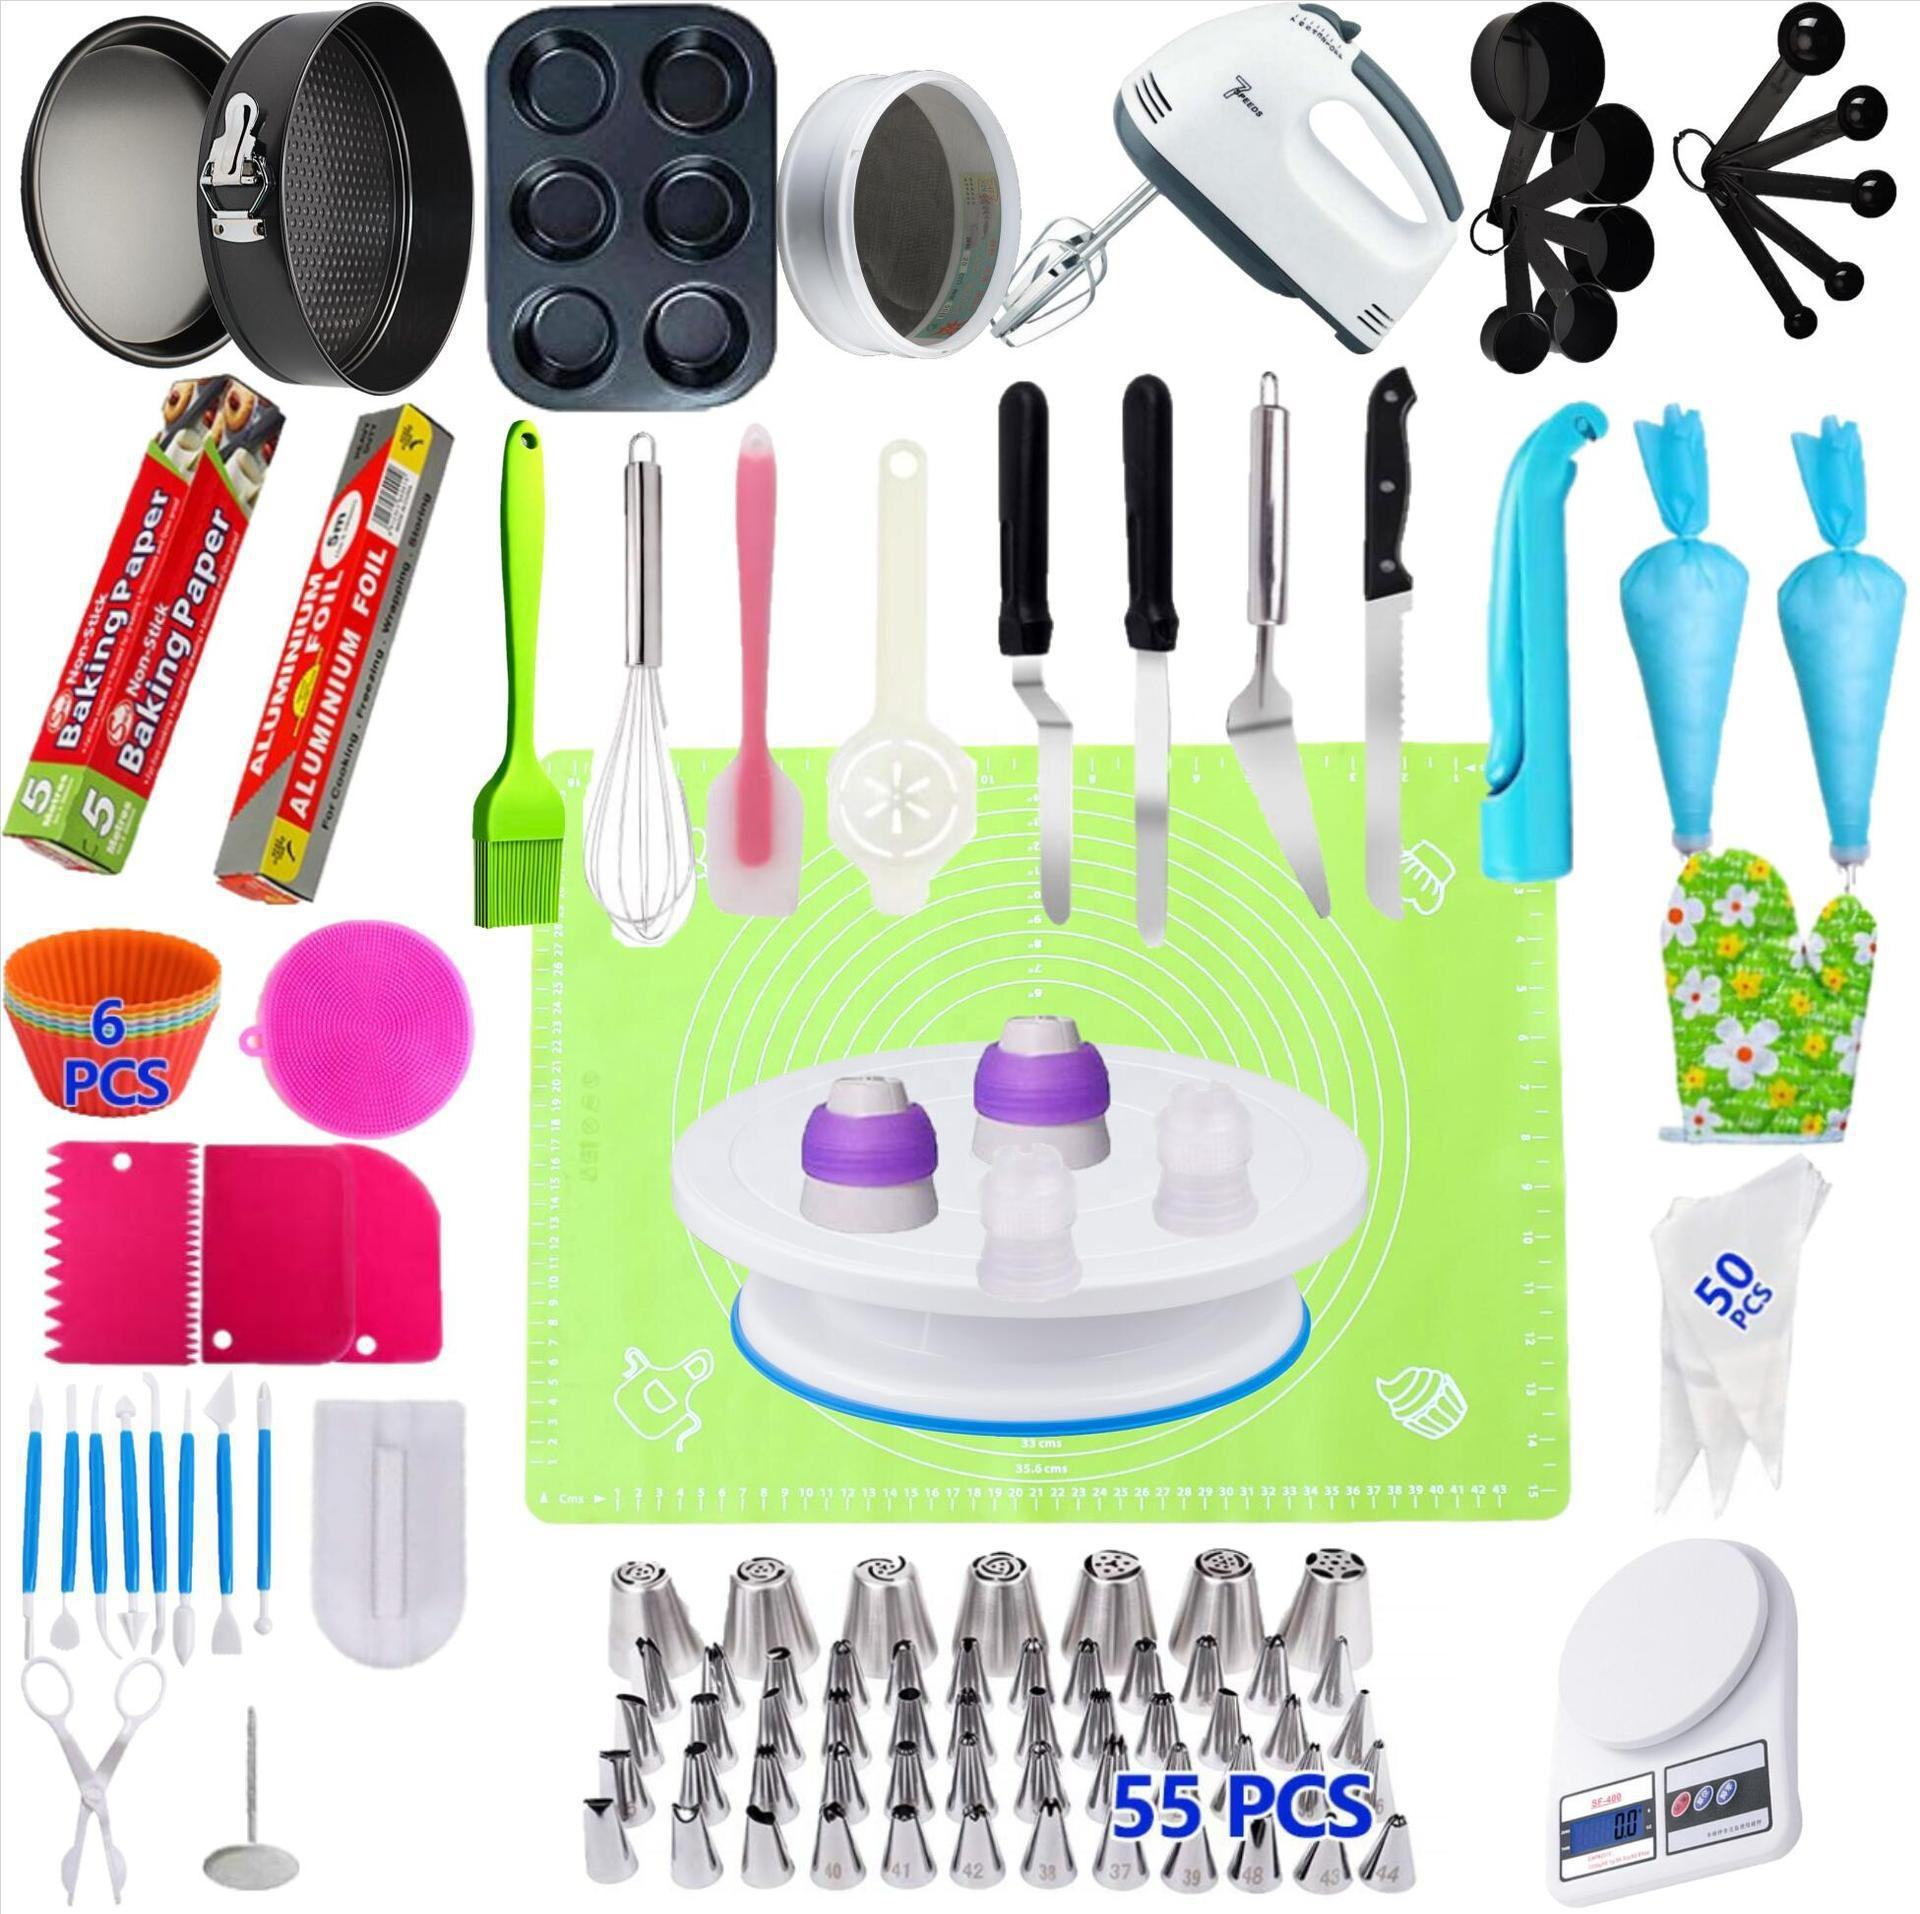 Wilton 224 PCS Complete Cake Decoration Kit Baking Supplies Cake Stand Turntable Pan Mold Piping Tips Cake Decorating Tools Set